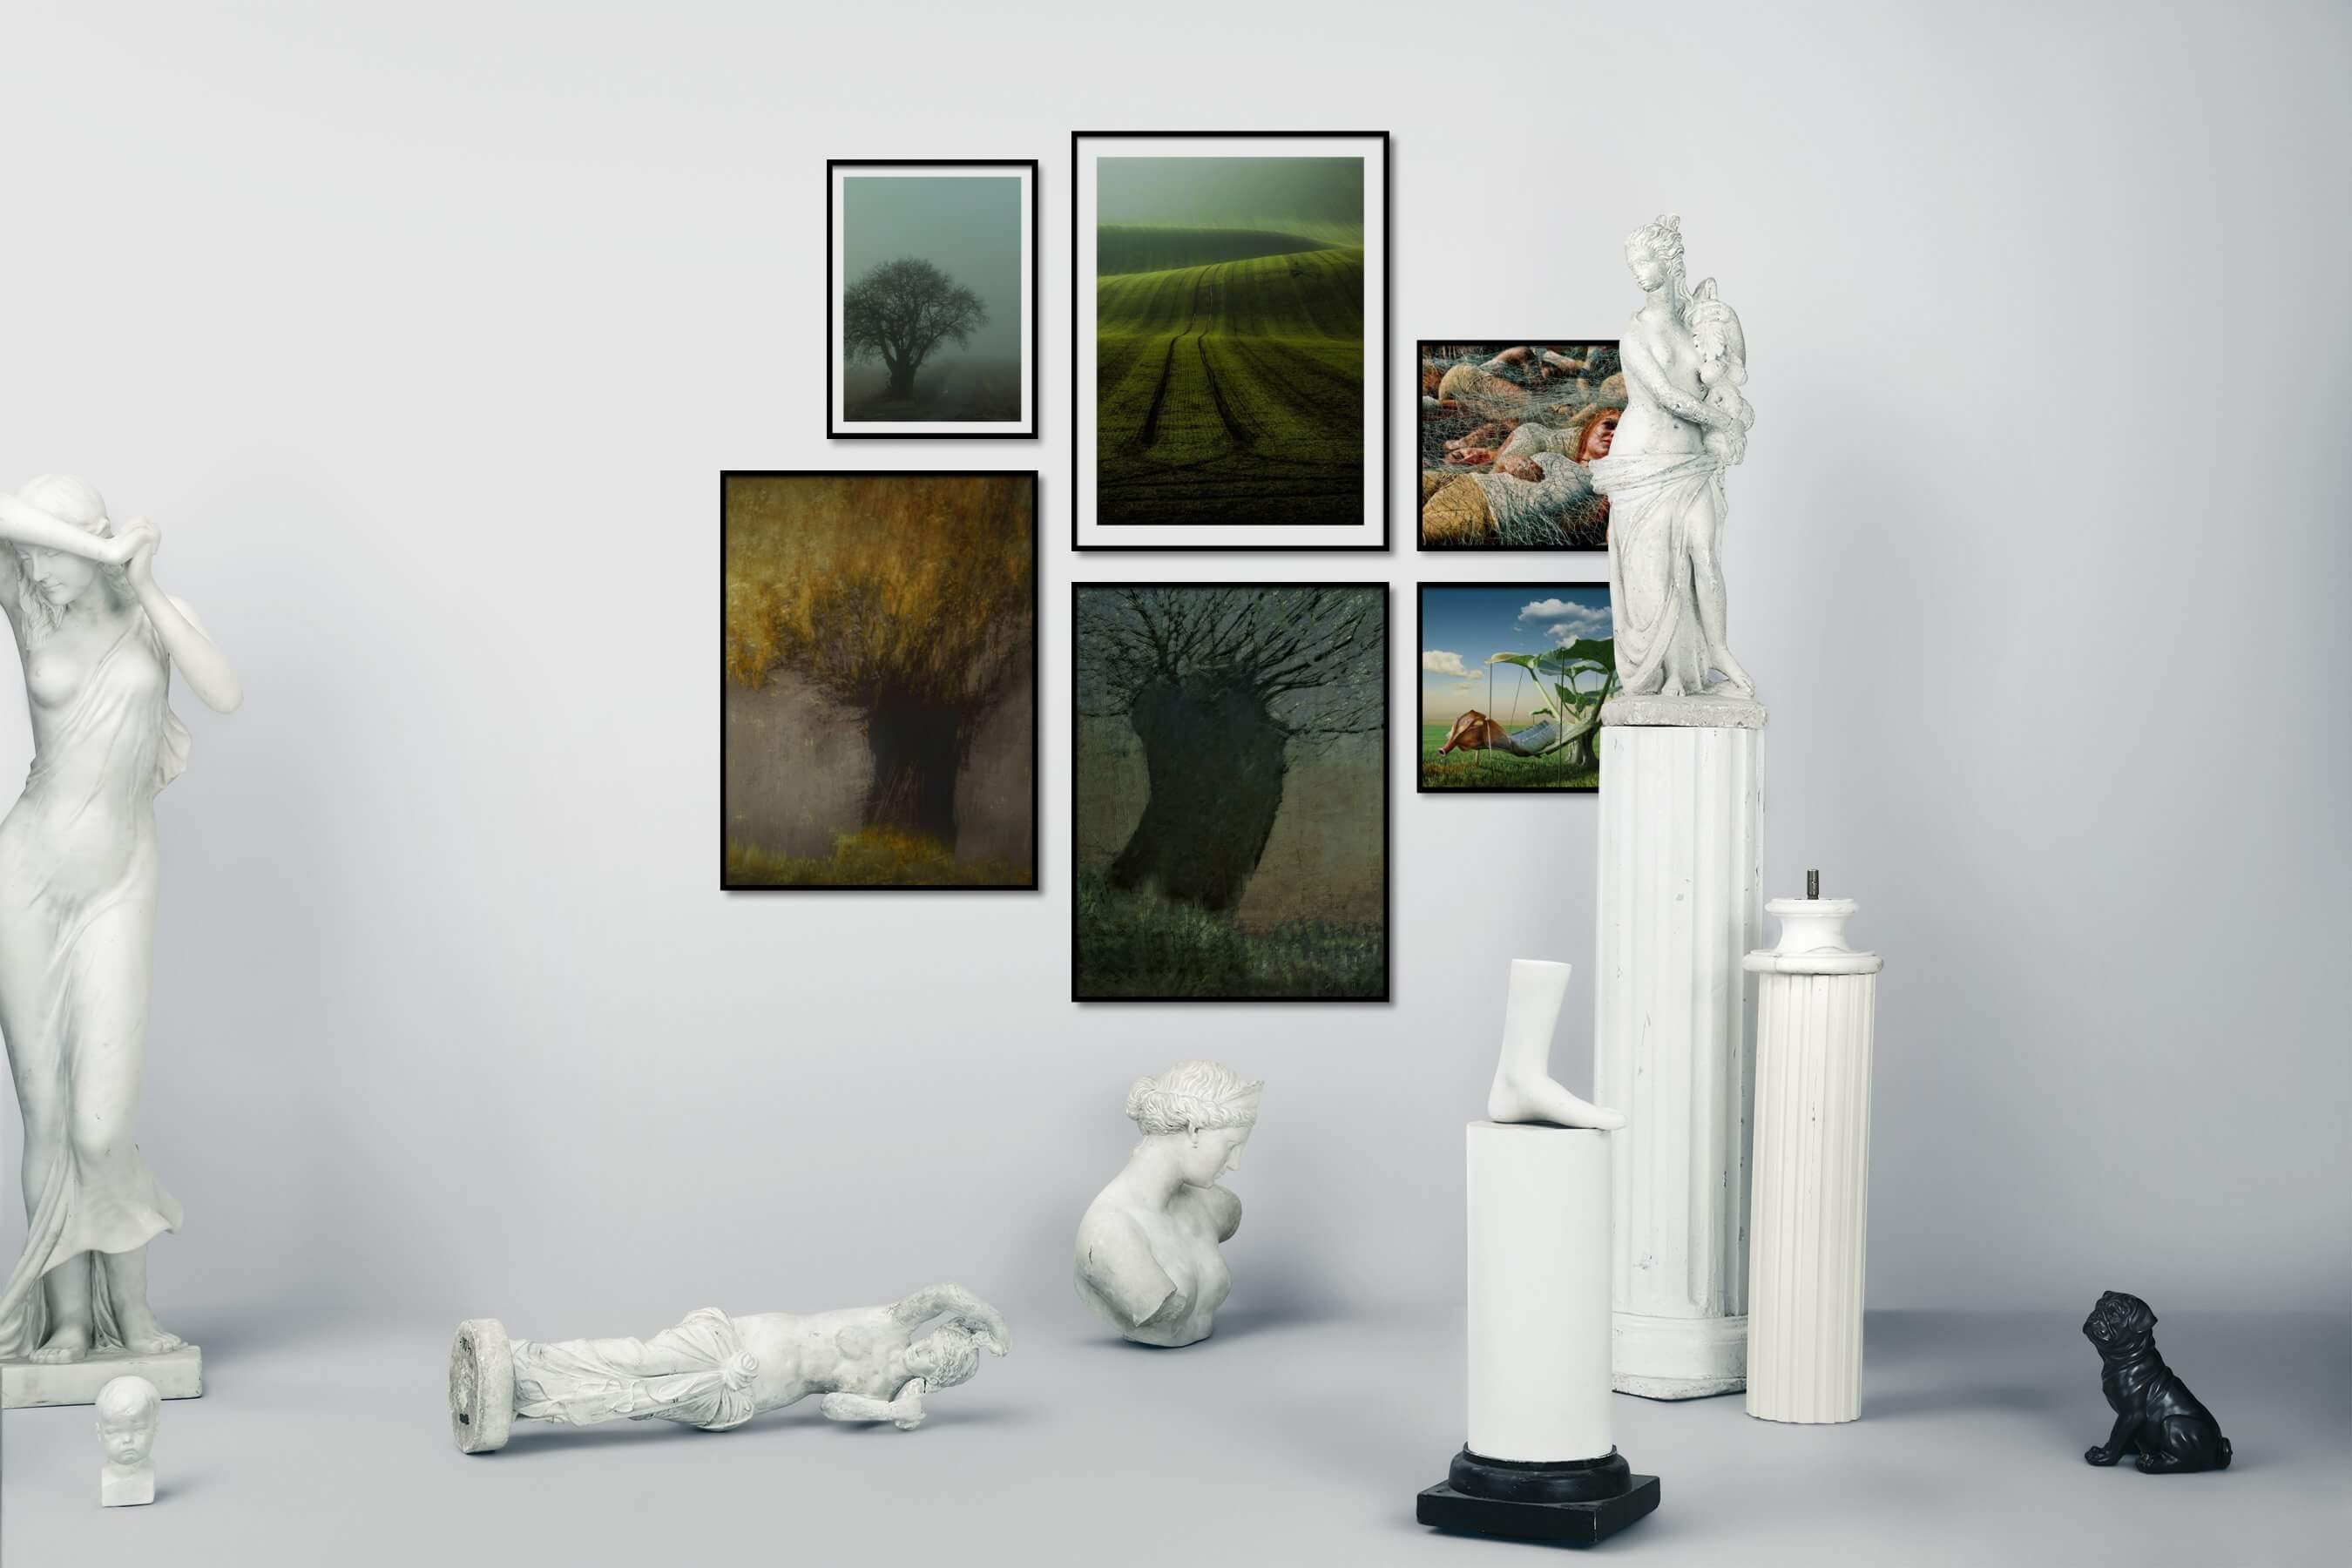 Gallery wall idea with six framed pictures arranged on a wall depicting Country Life, Nature, Artsy, For the Maximalist, and Flowers & Plants